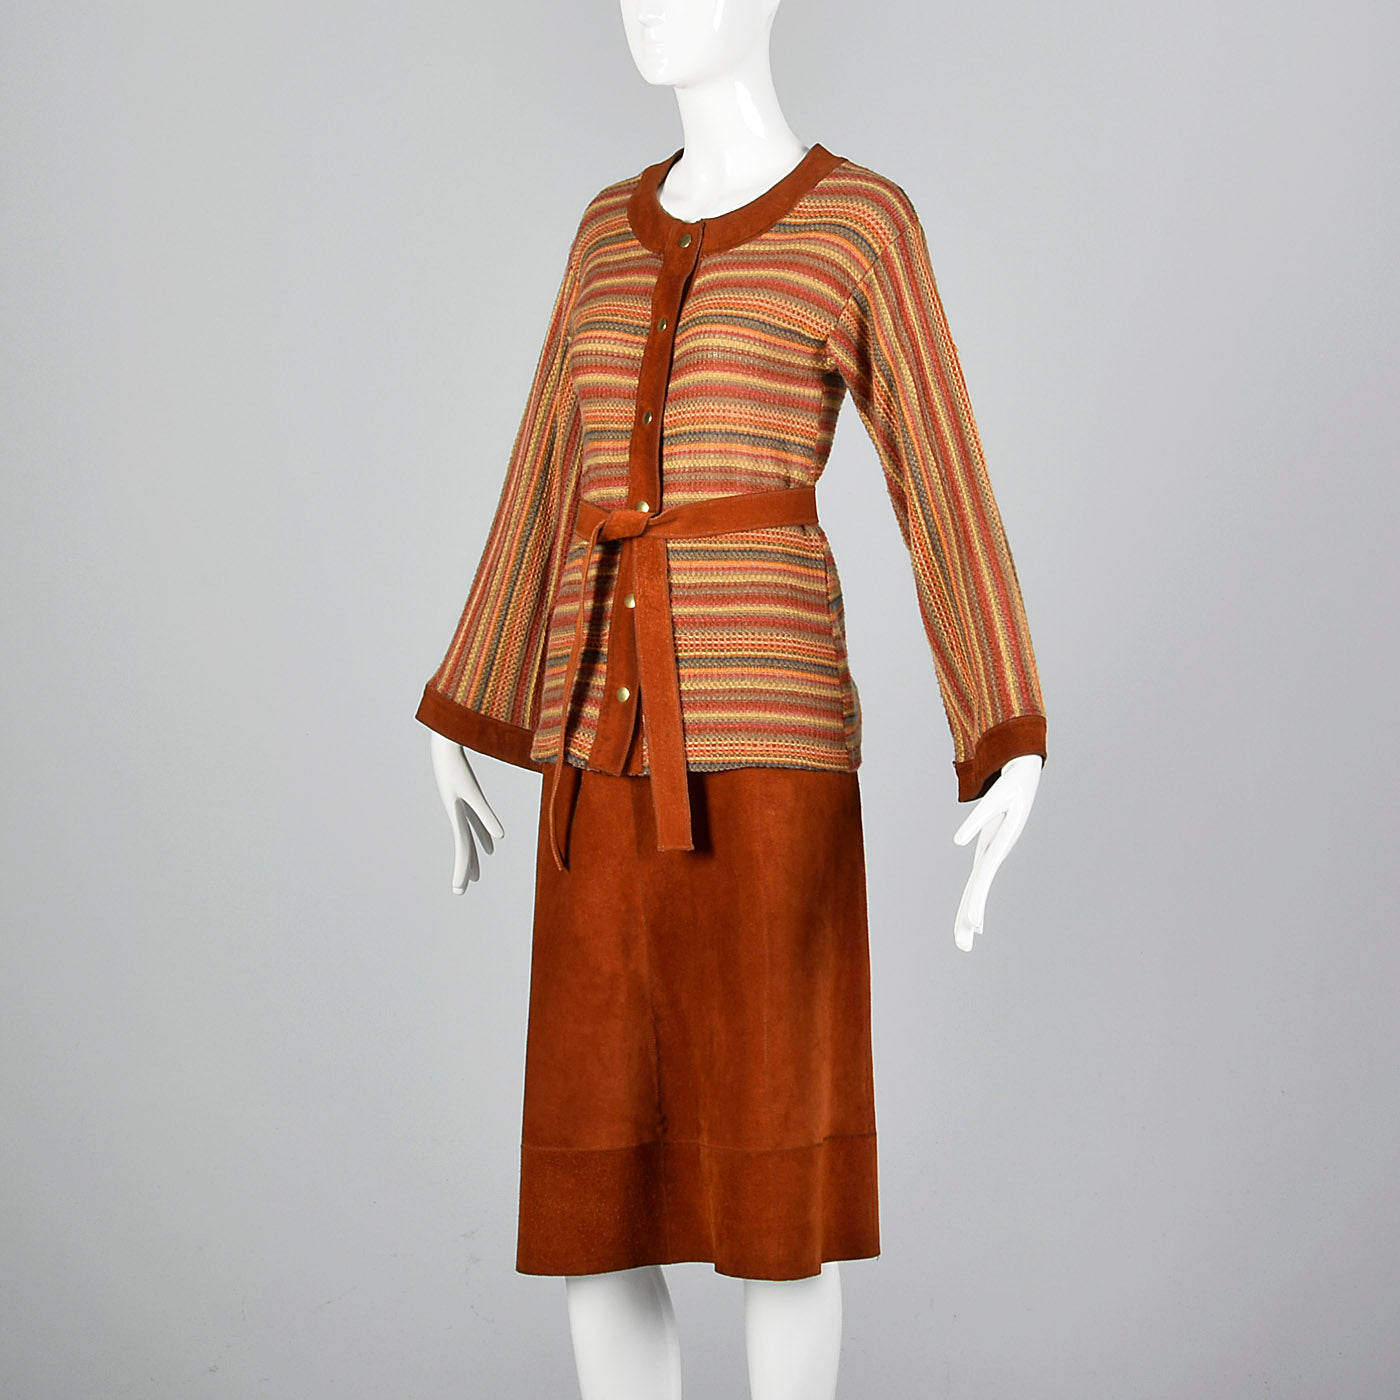 1960s Pierre Cardin Bohemian Separates Leather Skirt & Cardigan Sweater